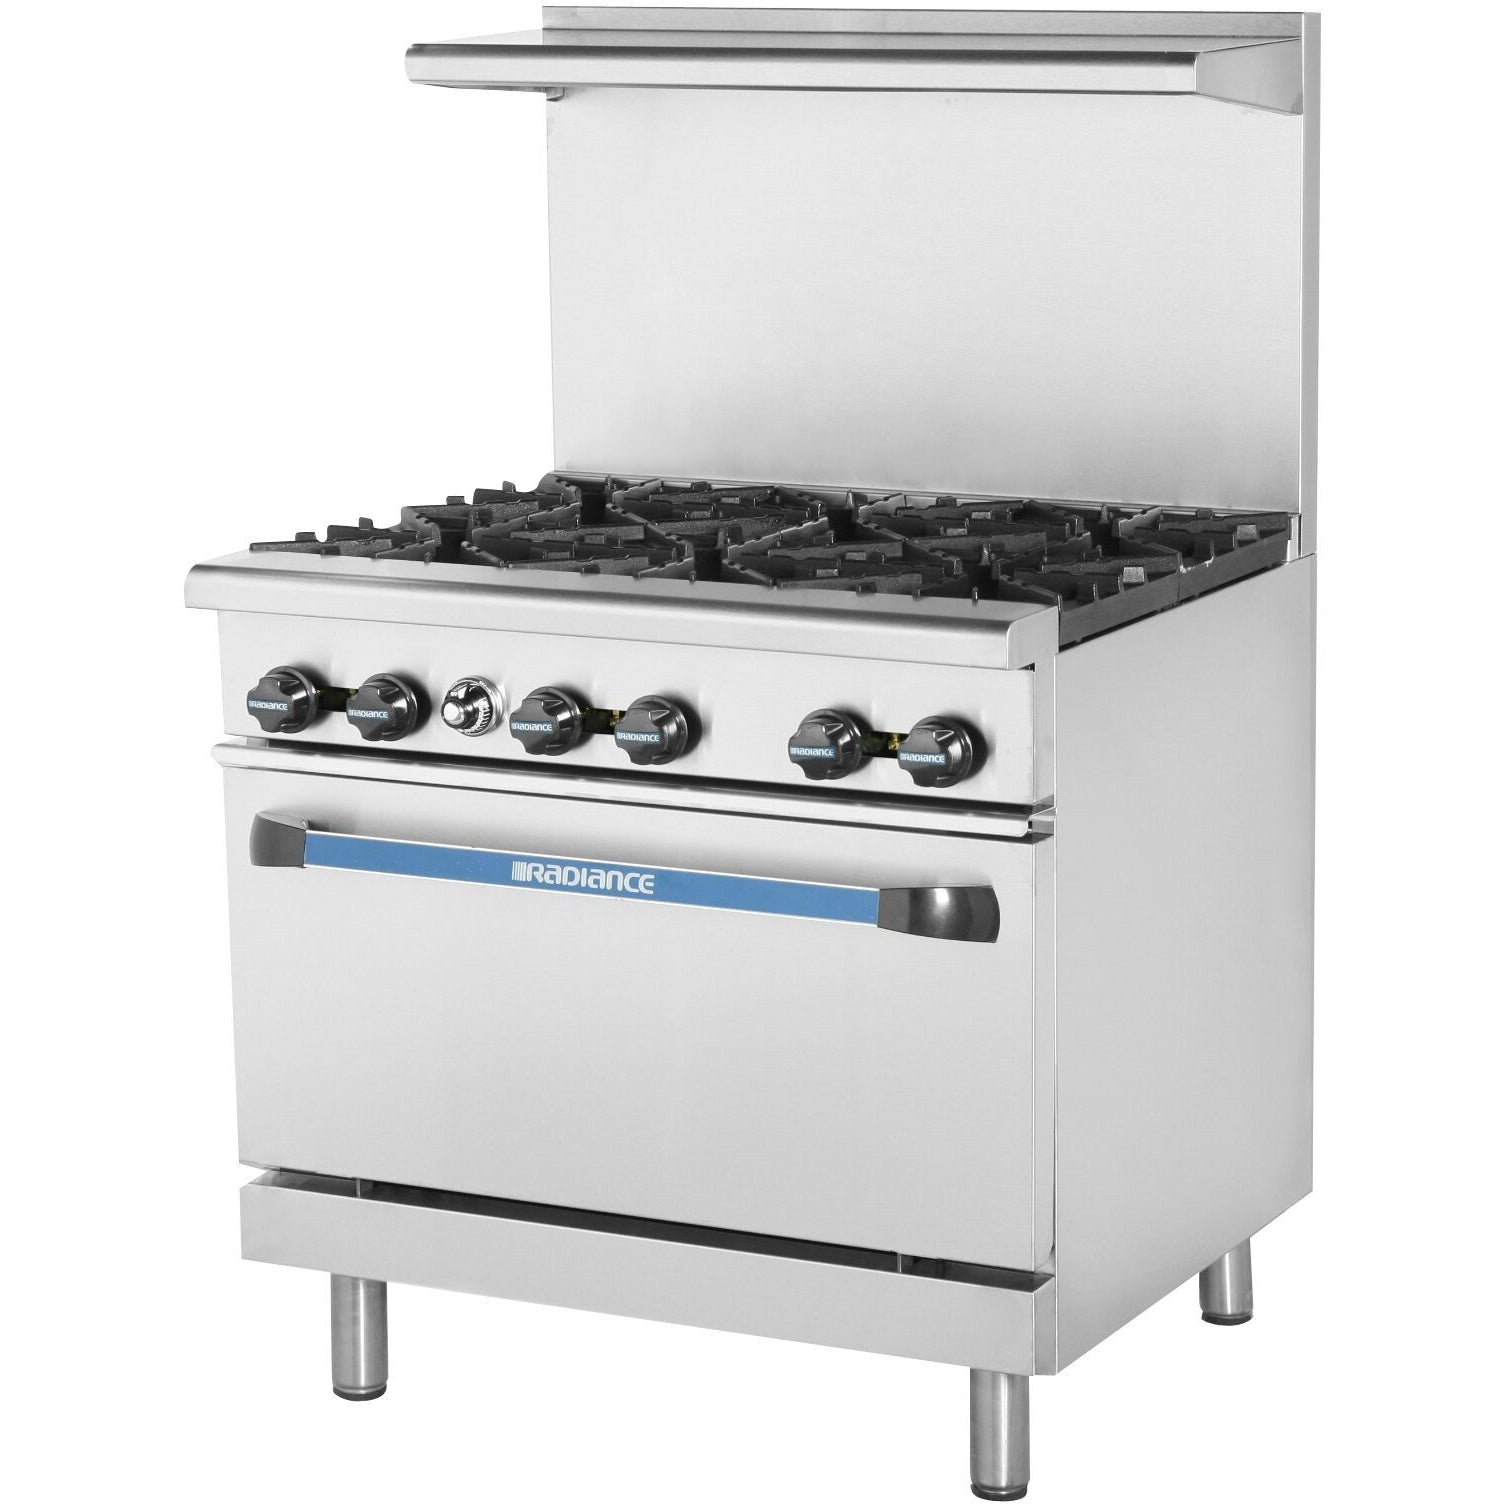 Radiance TAR-6 Commercial Kitchen Restaurant Range 6 Burner with Oven  Natural Gas